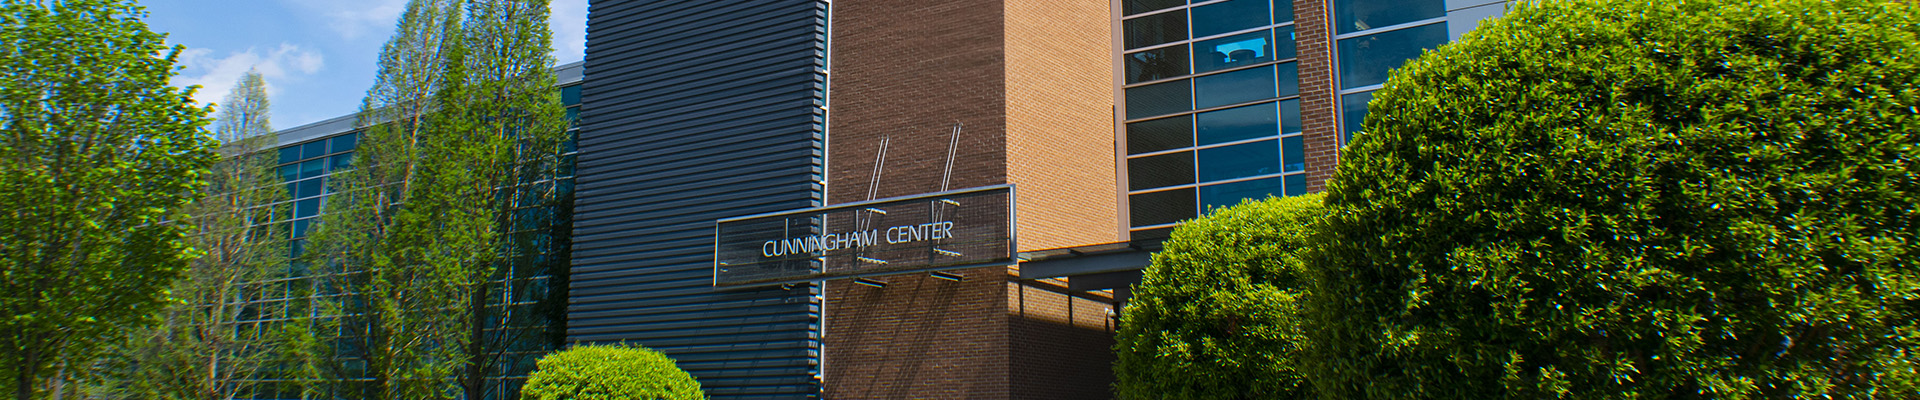 a large building with the words Cunningham Center on it